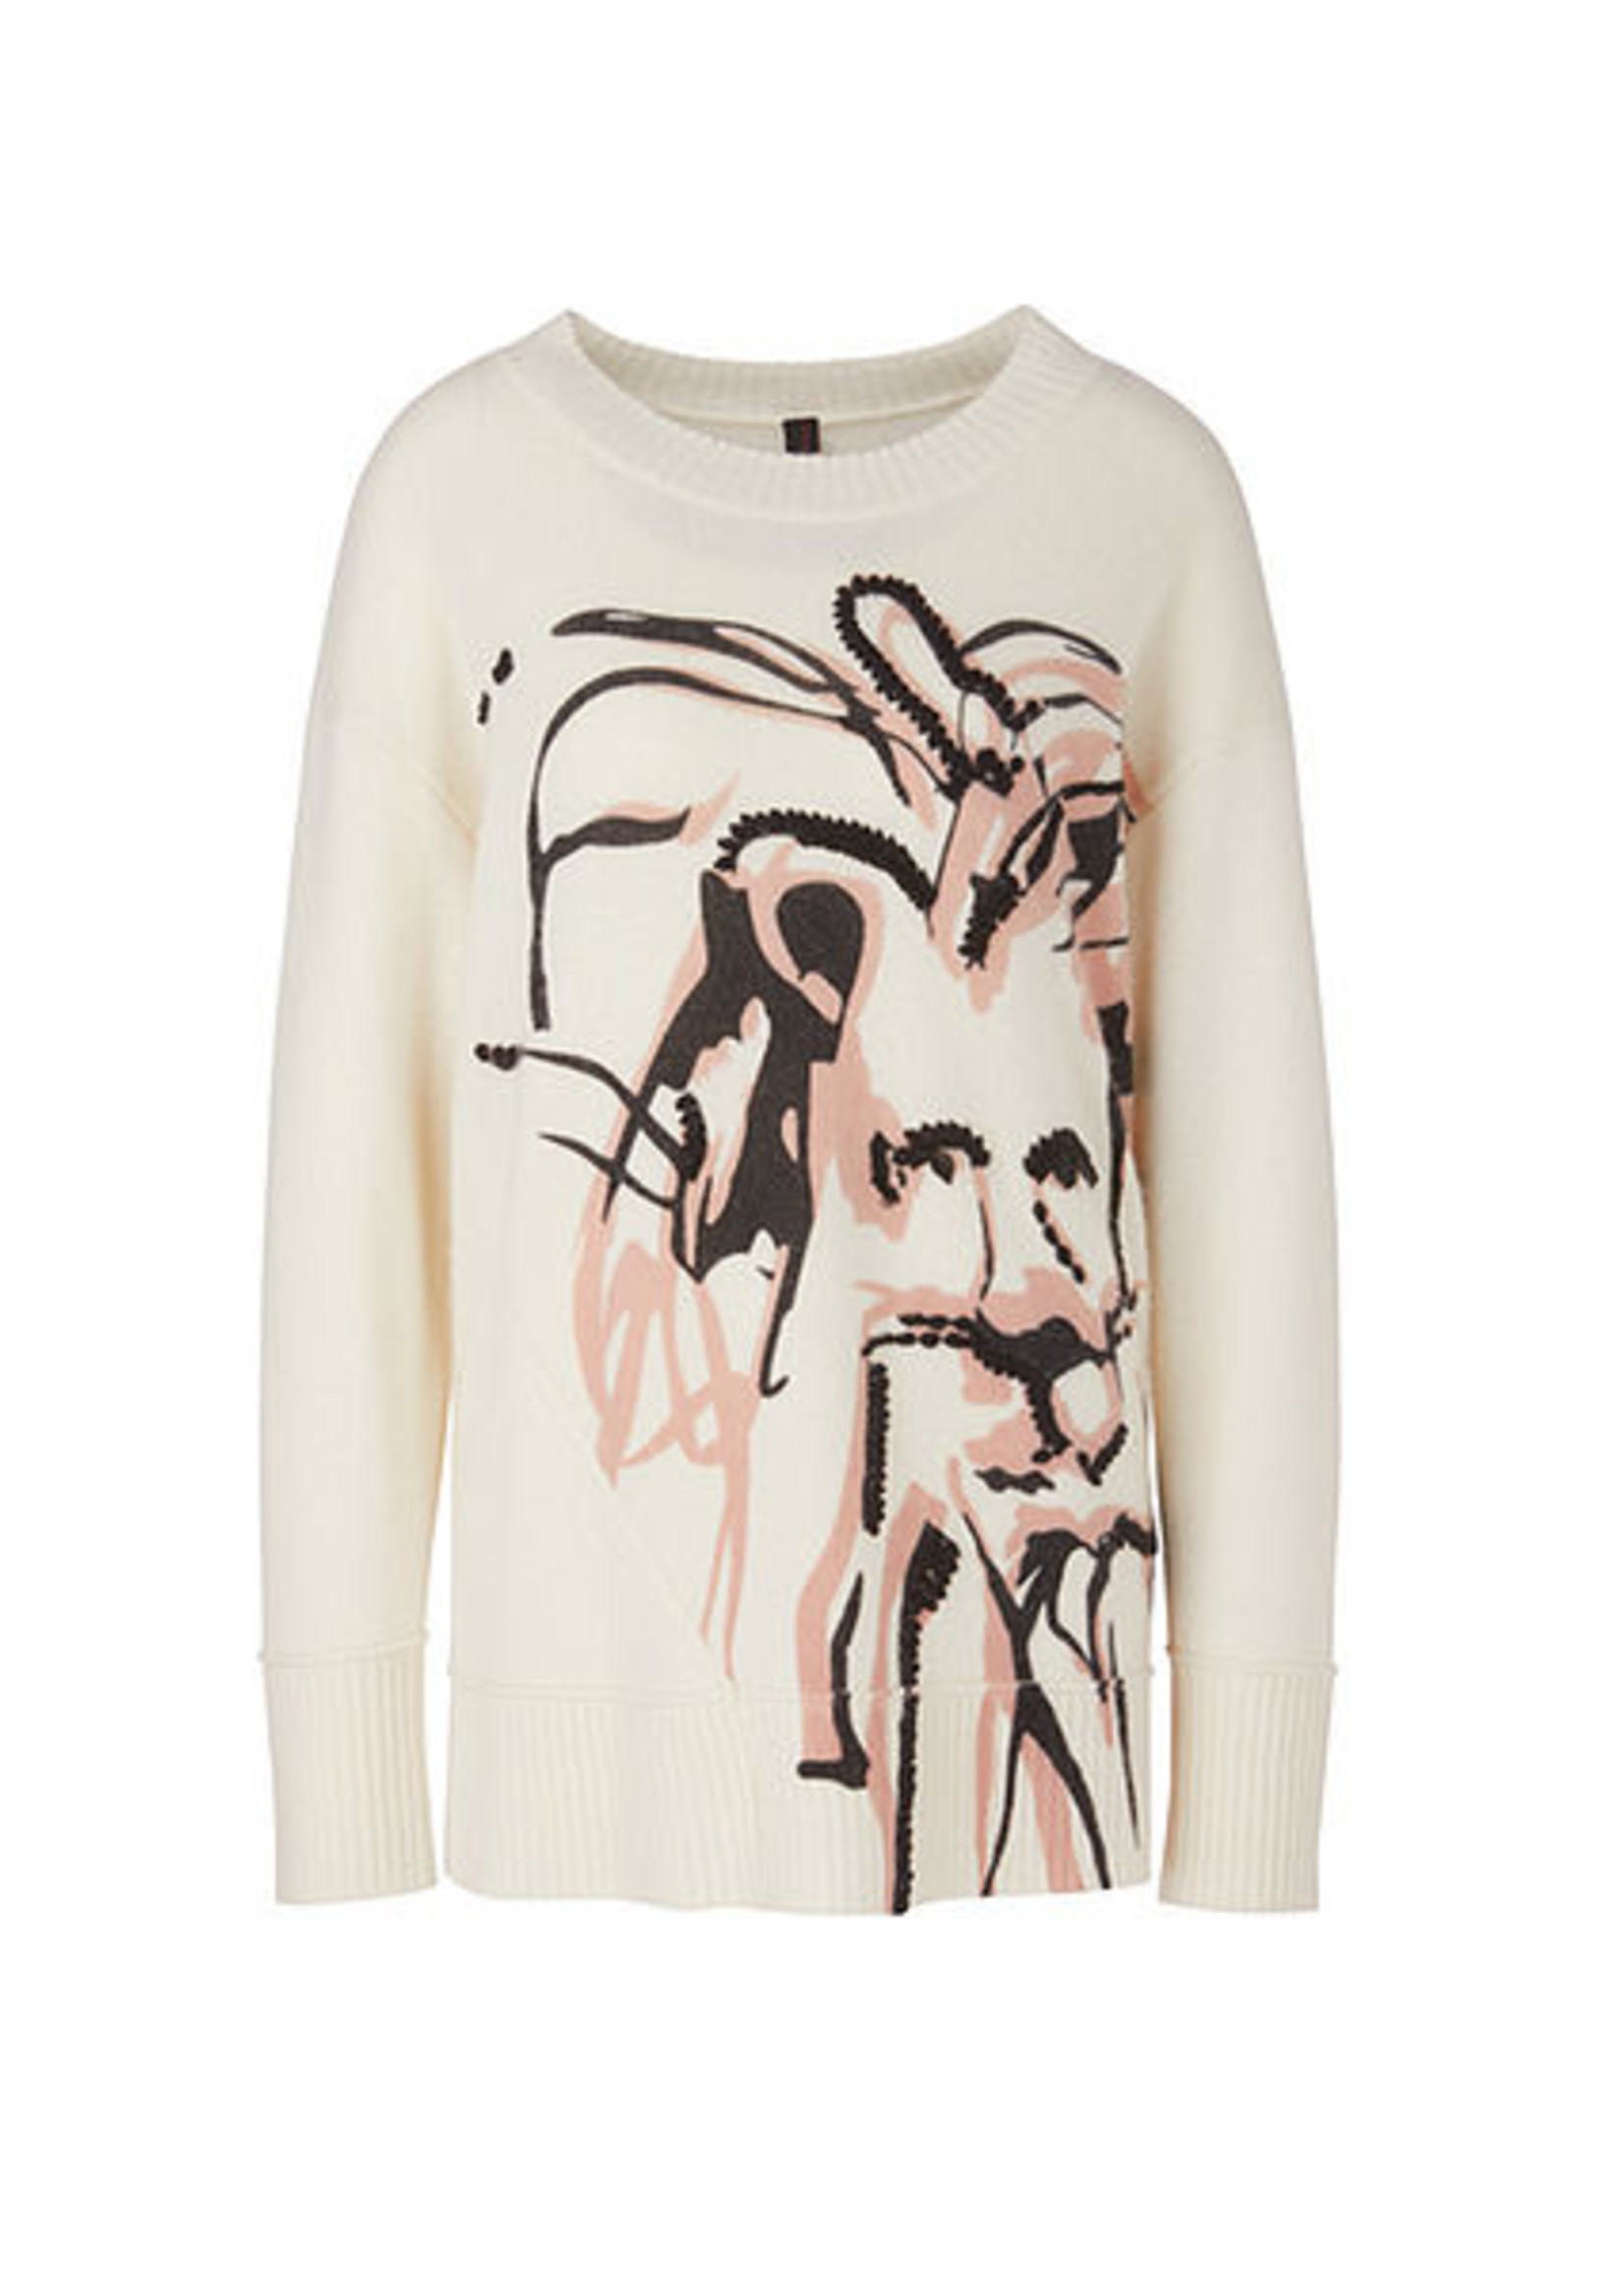 Sweater RC 41.10 M71 white and black